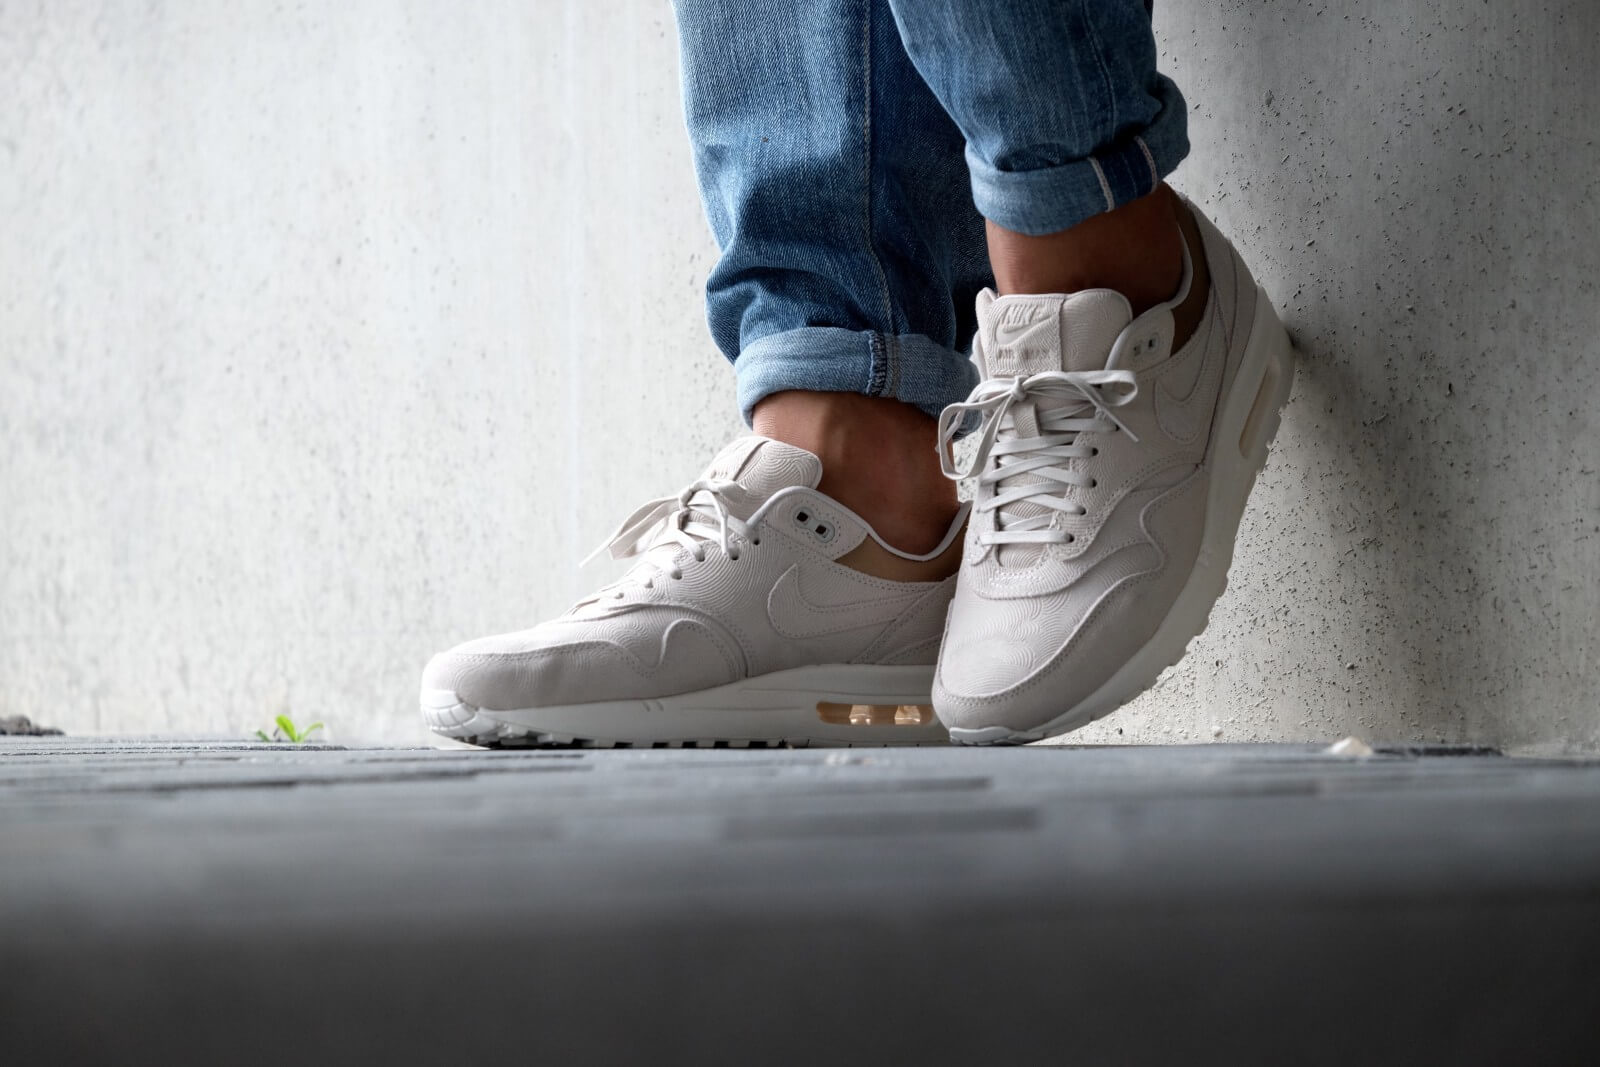 Nike WMNS Air Max 1 PRM Gamma Grey Metallic Gold